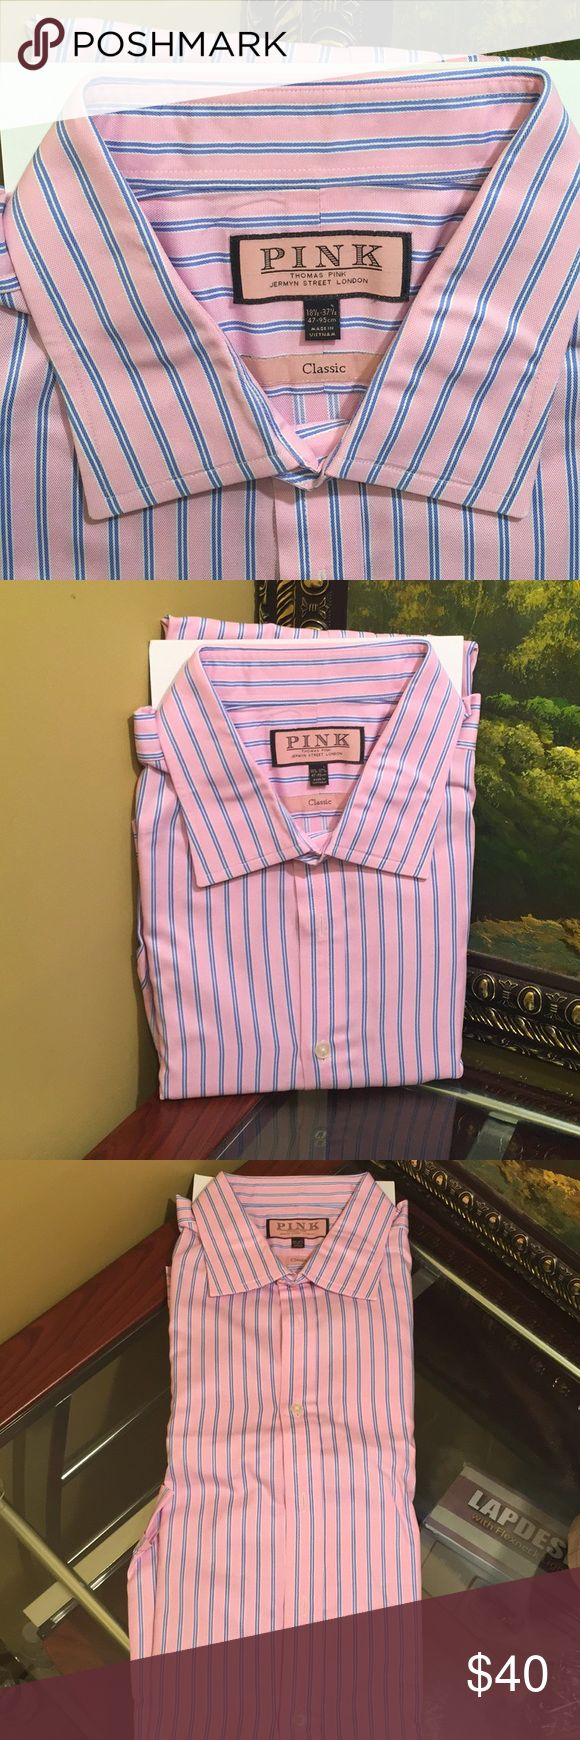 BEAUTIFUL PINK SHIRT 100% COTTON BY THOMAS PINK Beautiful pink shirt 100% cotton by Thomas Pink excellent condition looks like PINK Shirts Tees - Long Sleeve